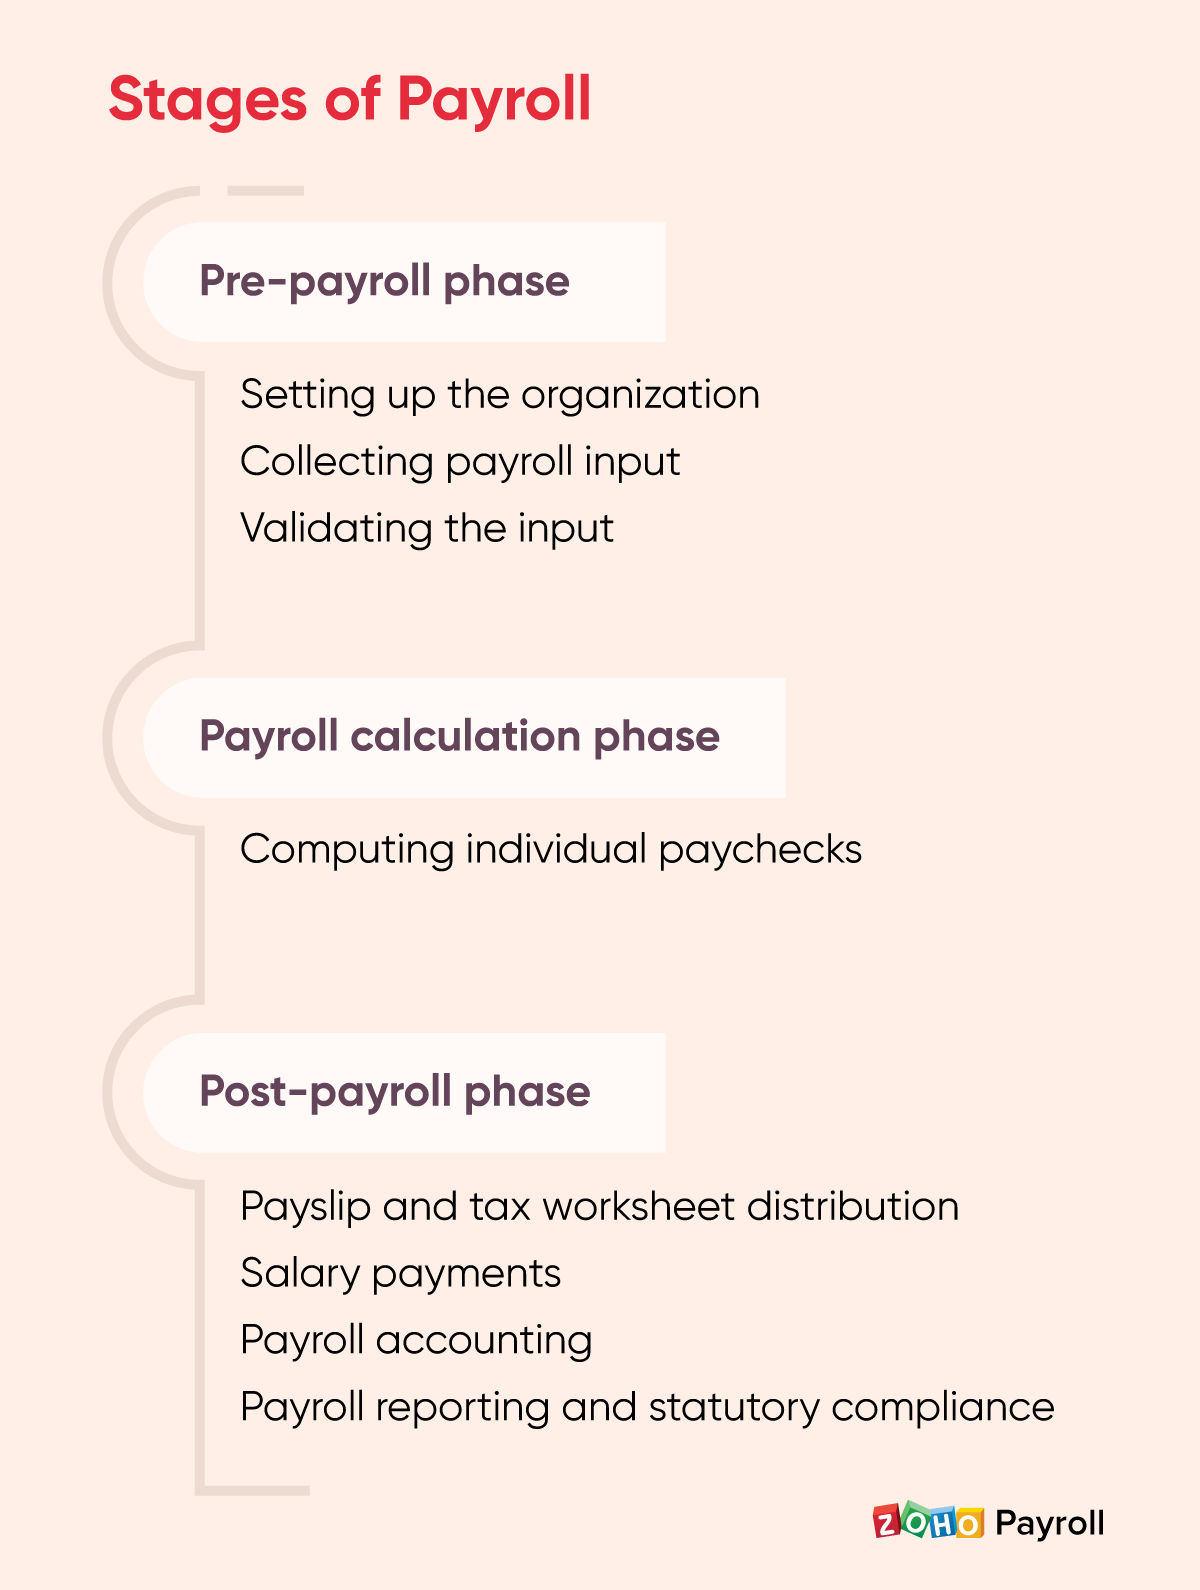 Three stages of payroll management - Zoho Payroll